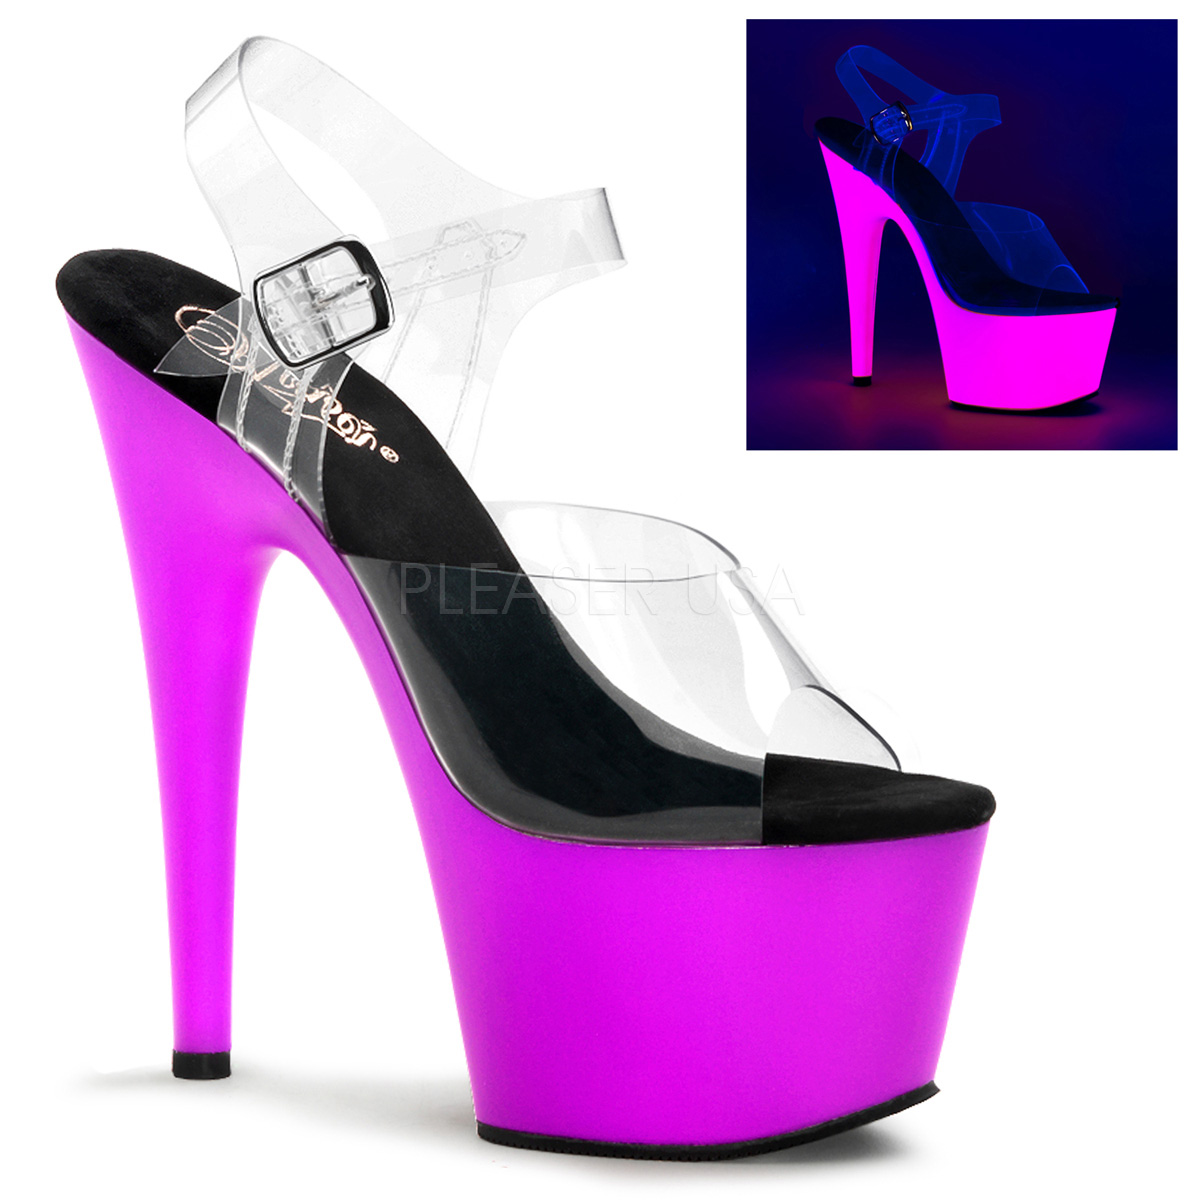 7 Inch Stiletto Heel Neon Platform Ankle Strap Sandals - Click Image to Close